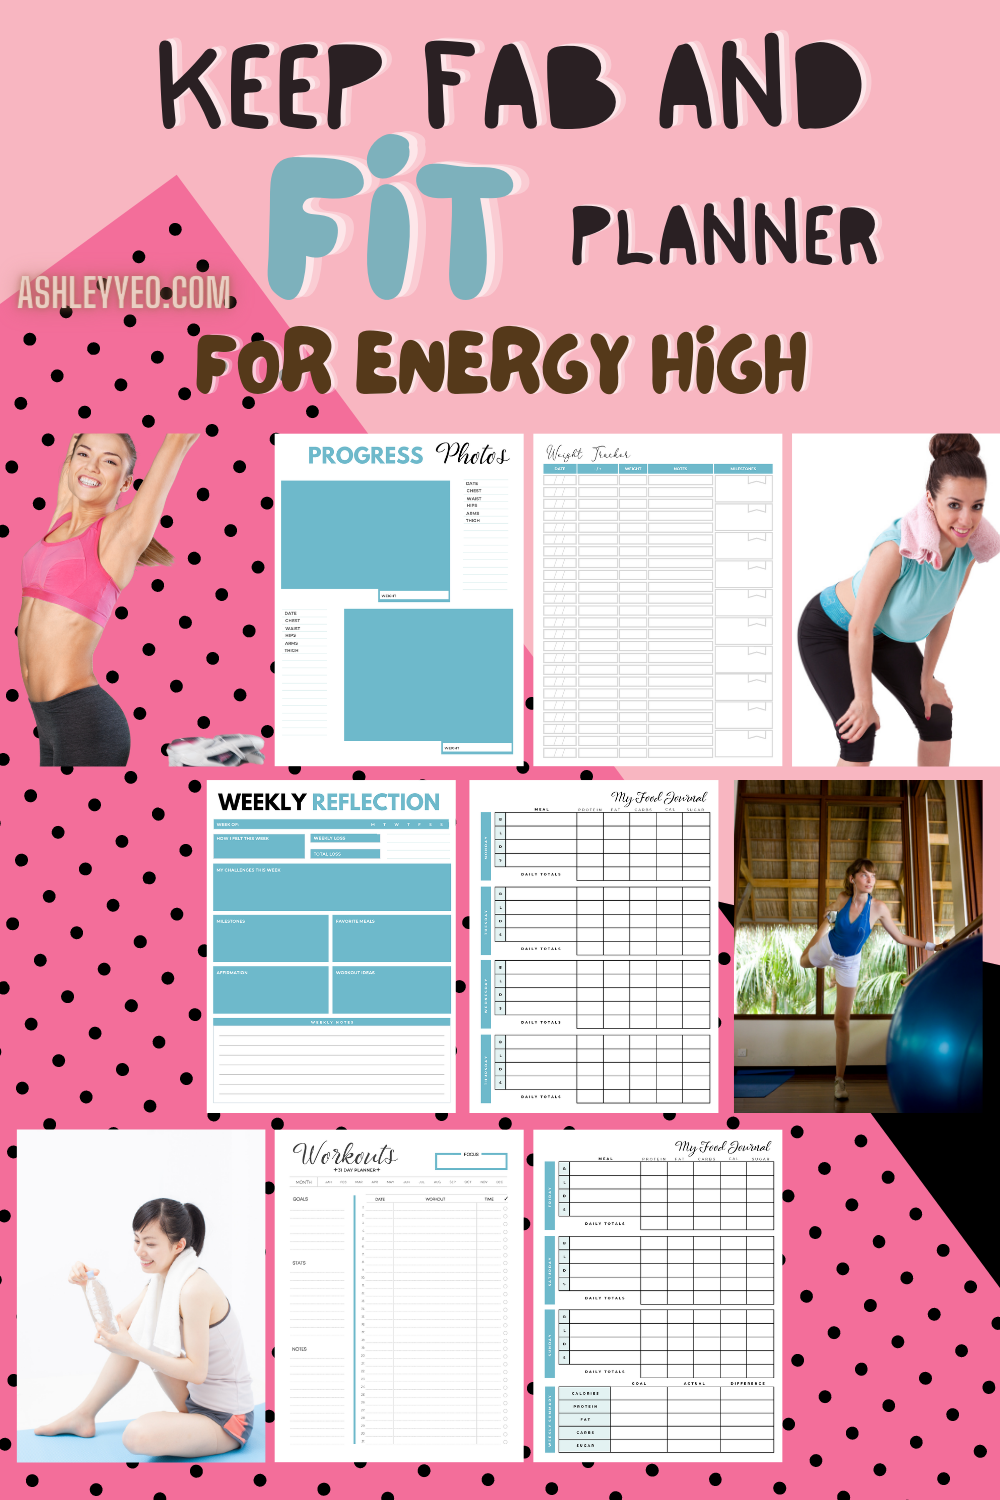 Keep Fab And Fit Planner For Energy High